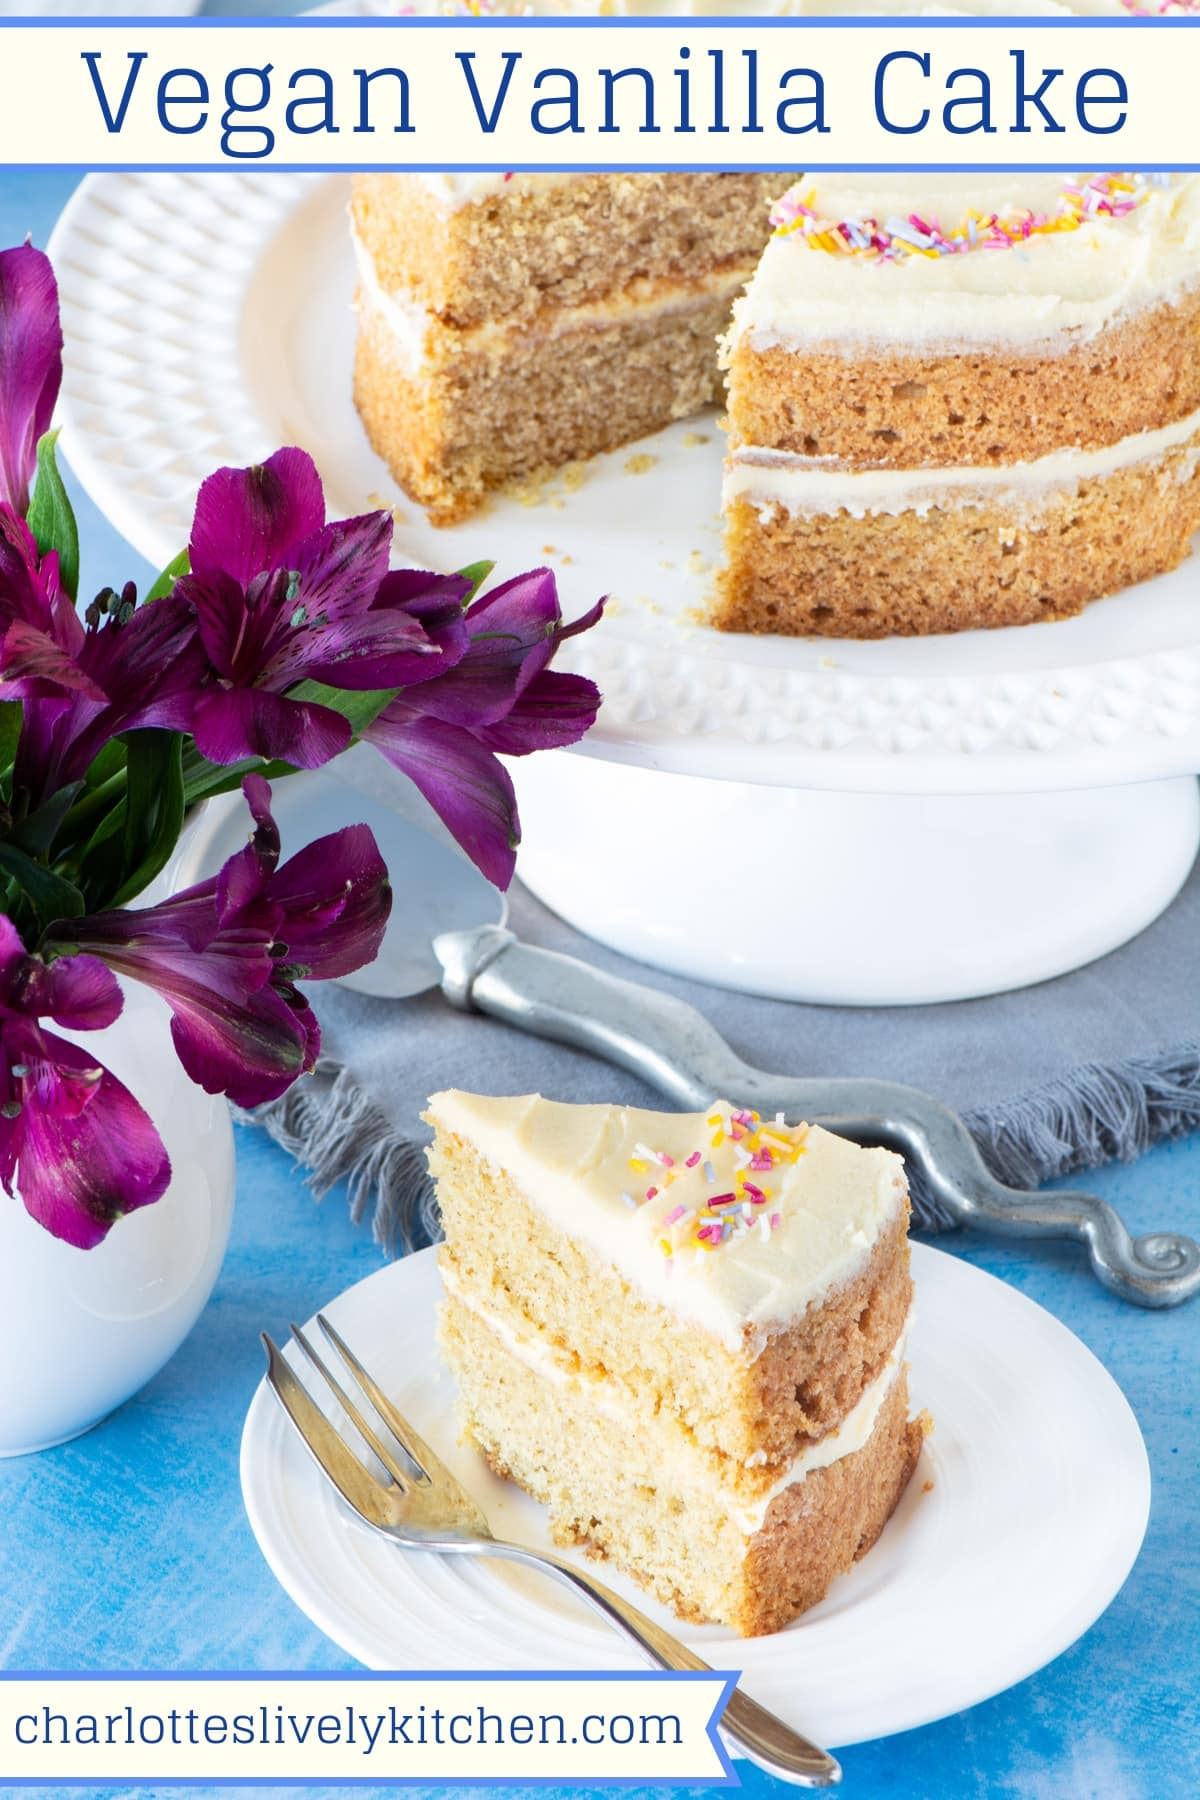 A slice of vegan sponge cake filled with vanilla buttercream, with the remaining cake in the background. The image has a title at the top, so it's perfect for saving to Pinterest.